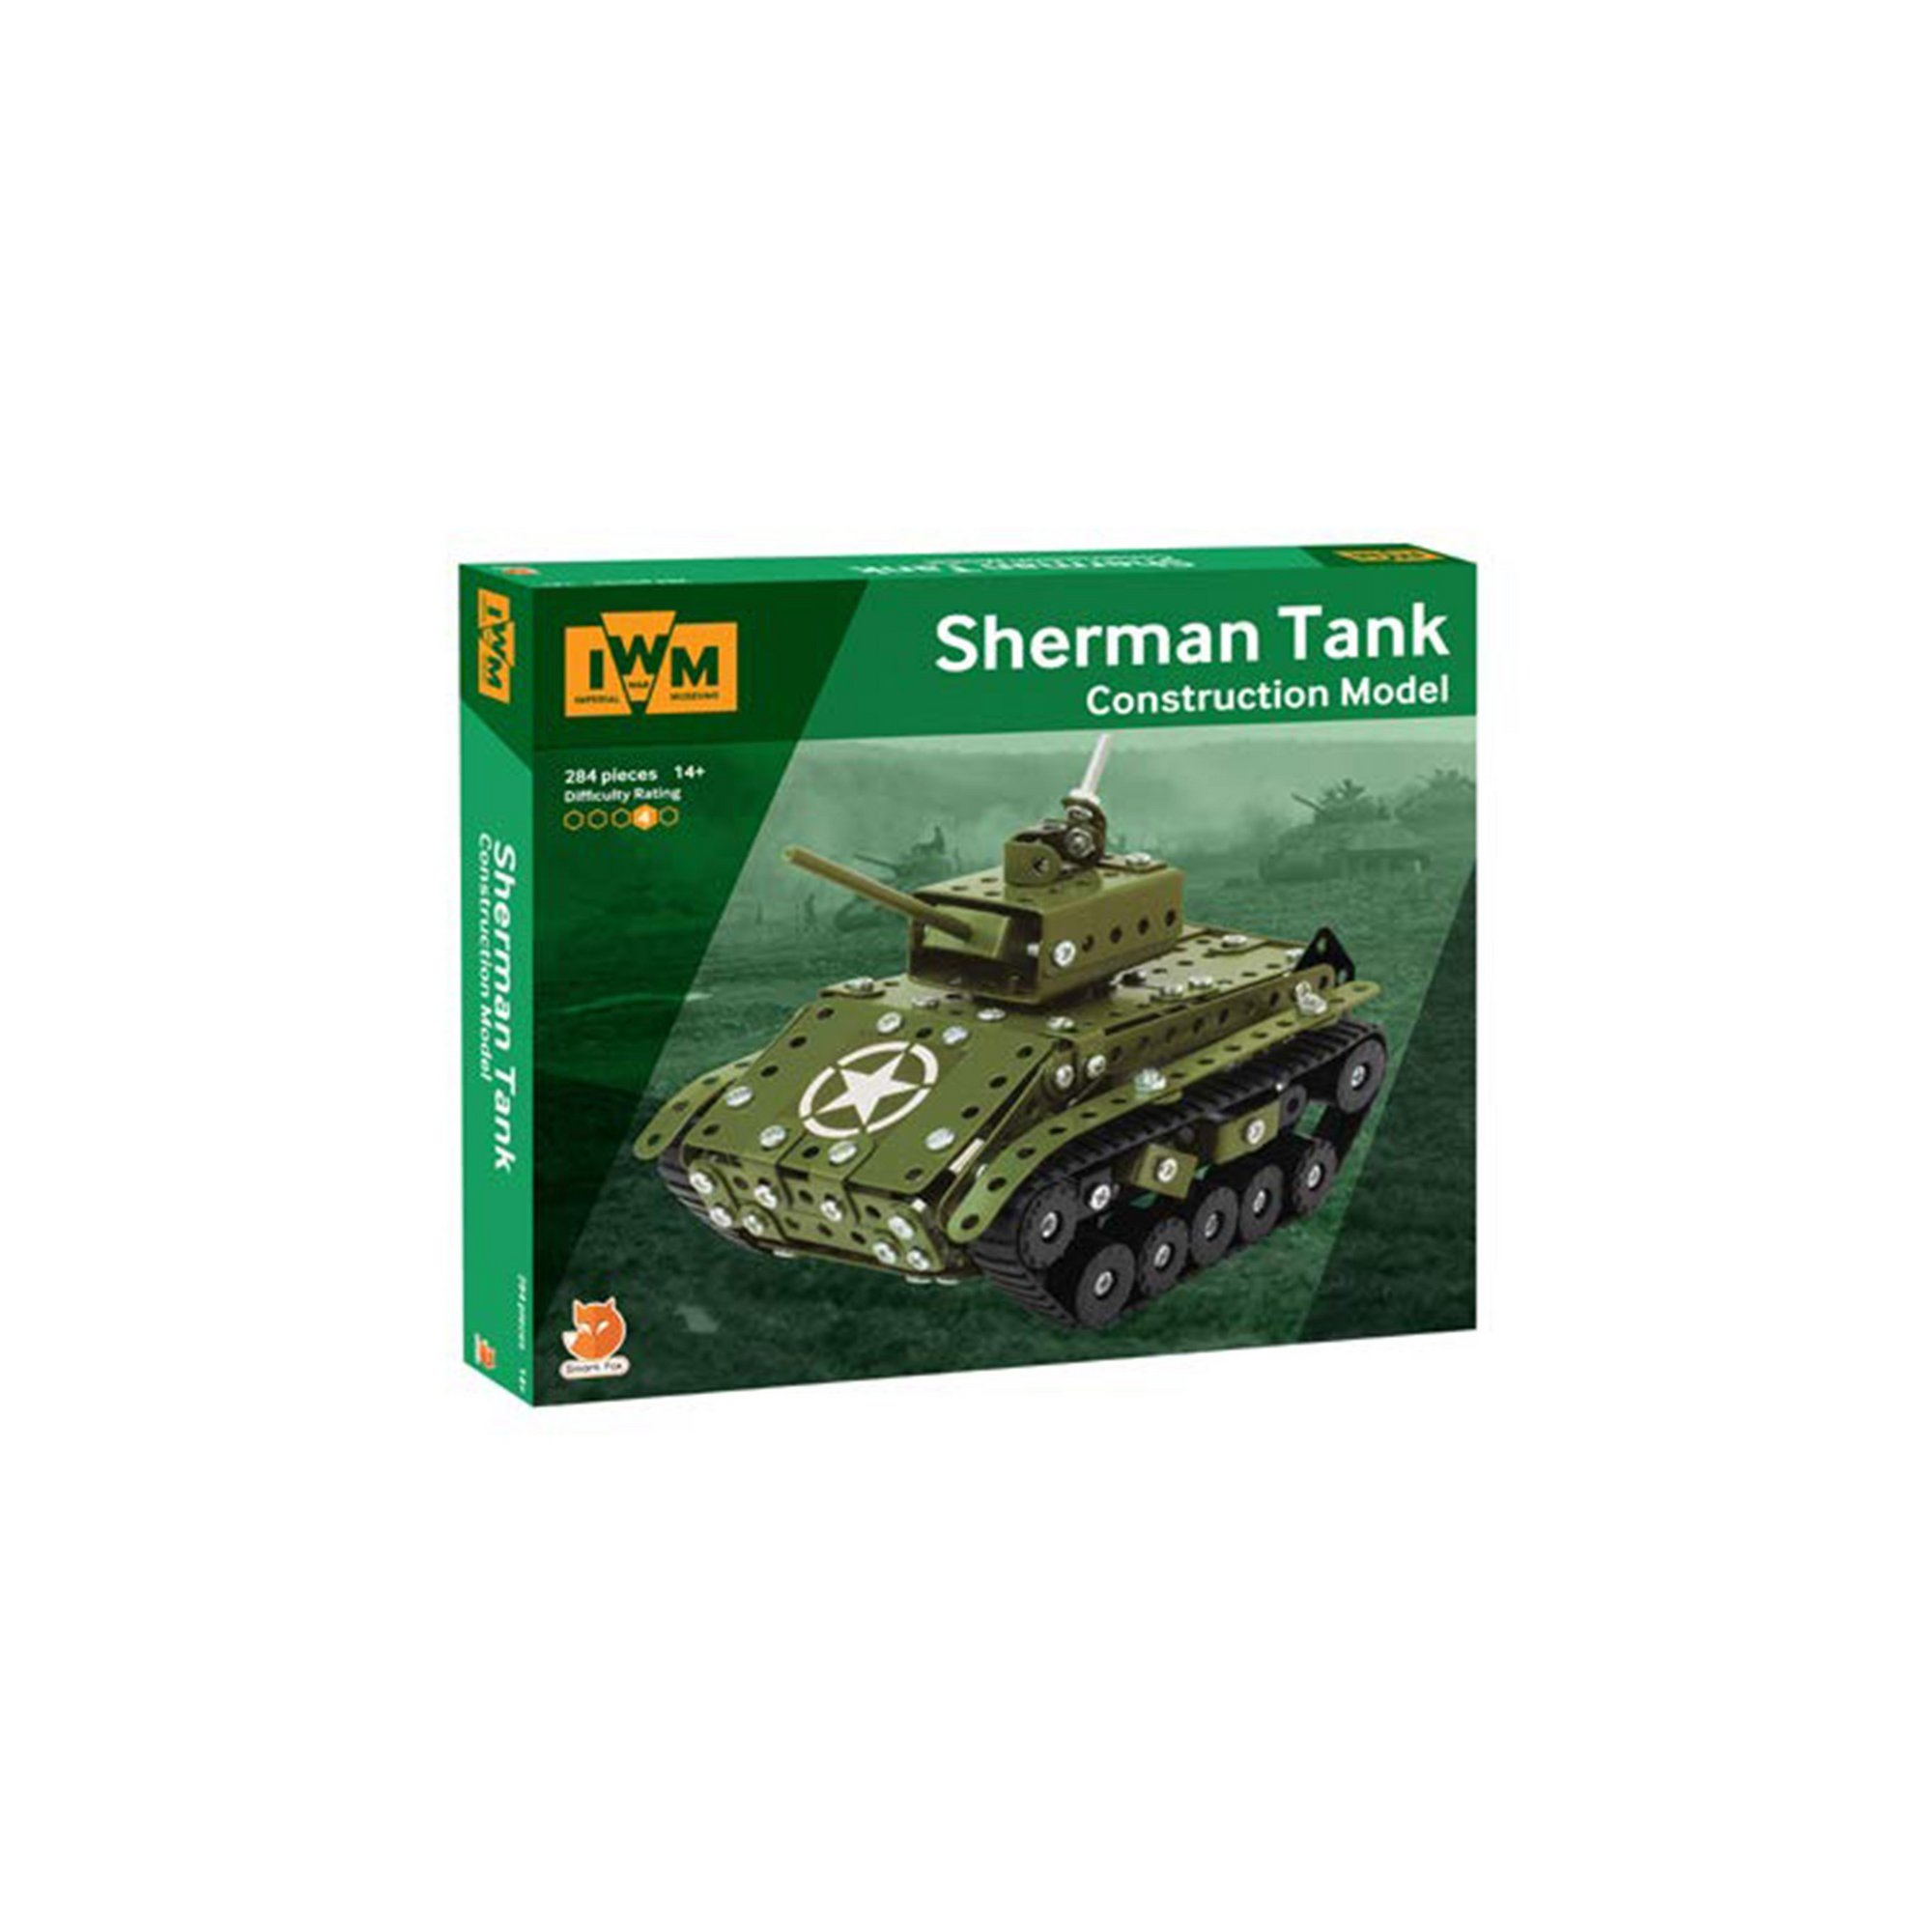 Image of Sherman Tank Imperial War Museums Construction Set